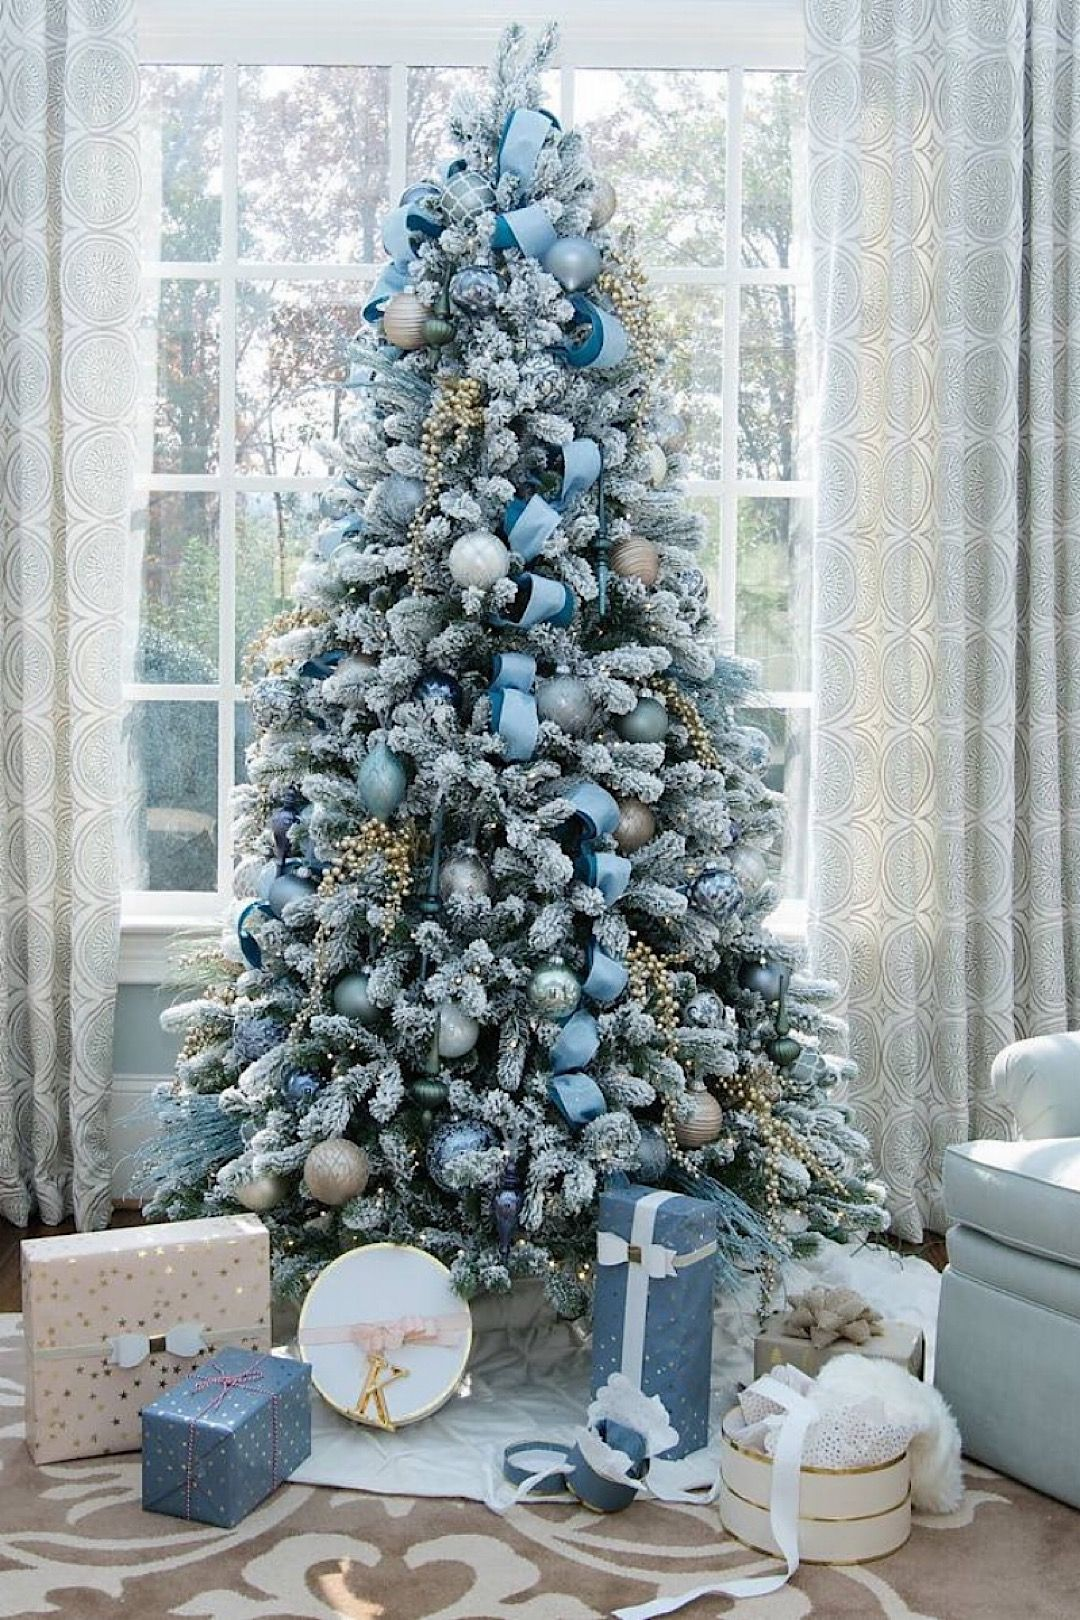 50 Dazzling And Highly Realistic Christmas Trees Purchased Kingofchristmas Styleestate Elegant Christmas Trees Realistic Christmas Trees Blue Christmas Tree Decorations